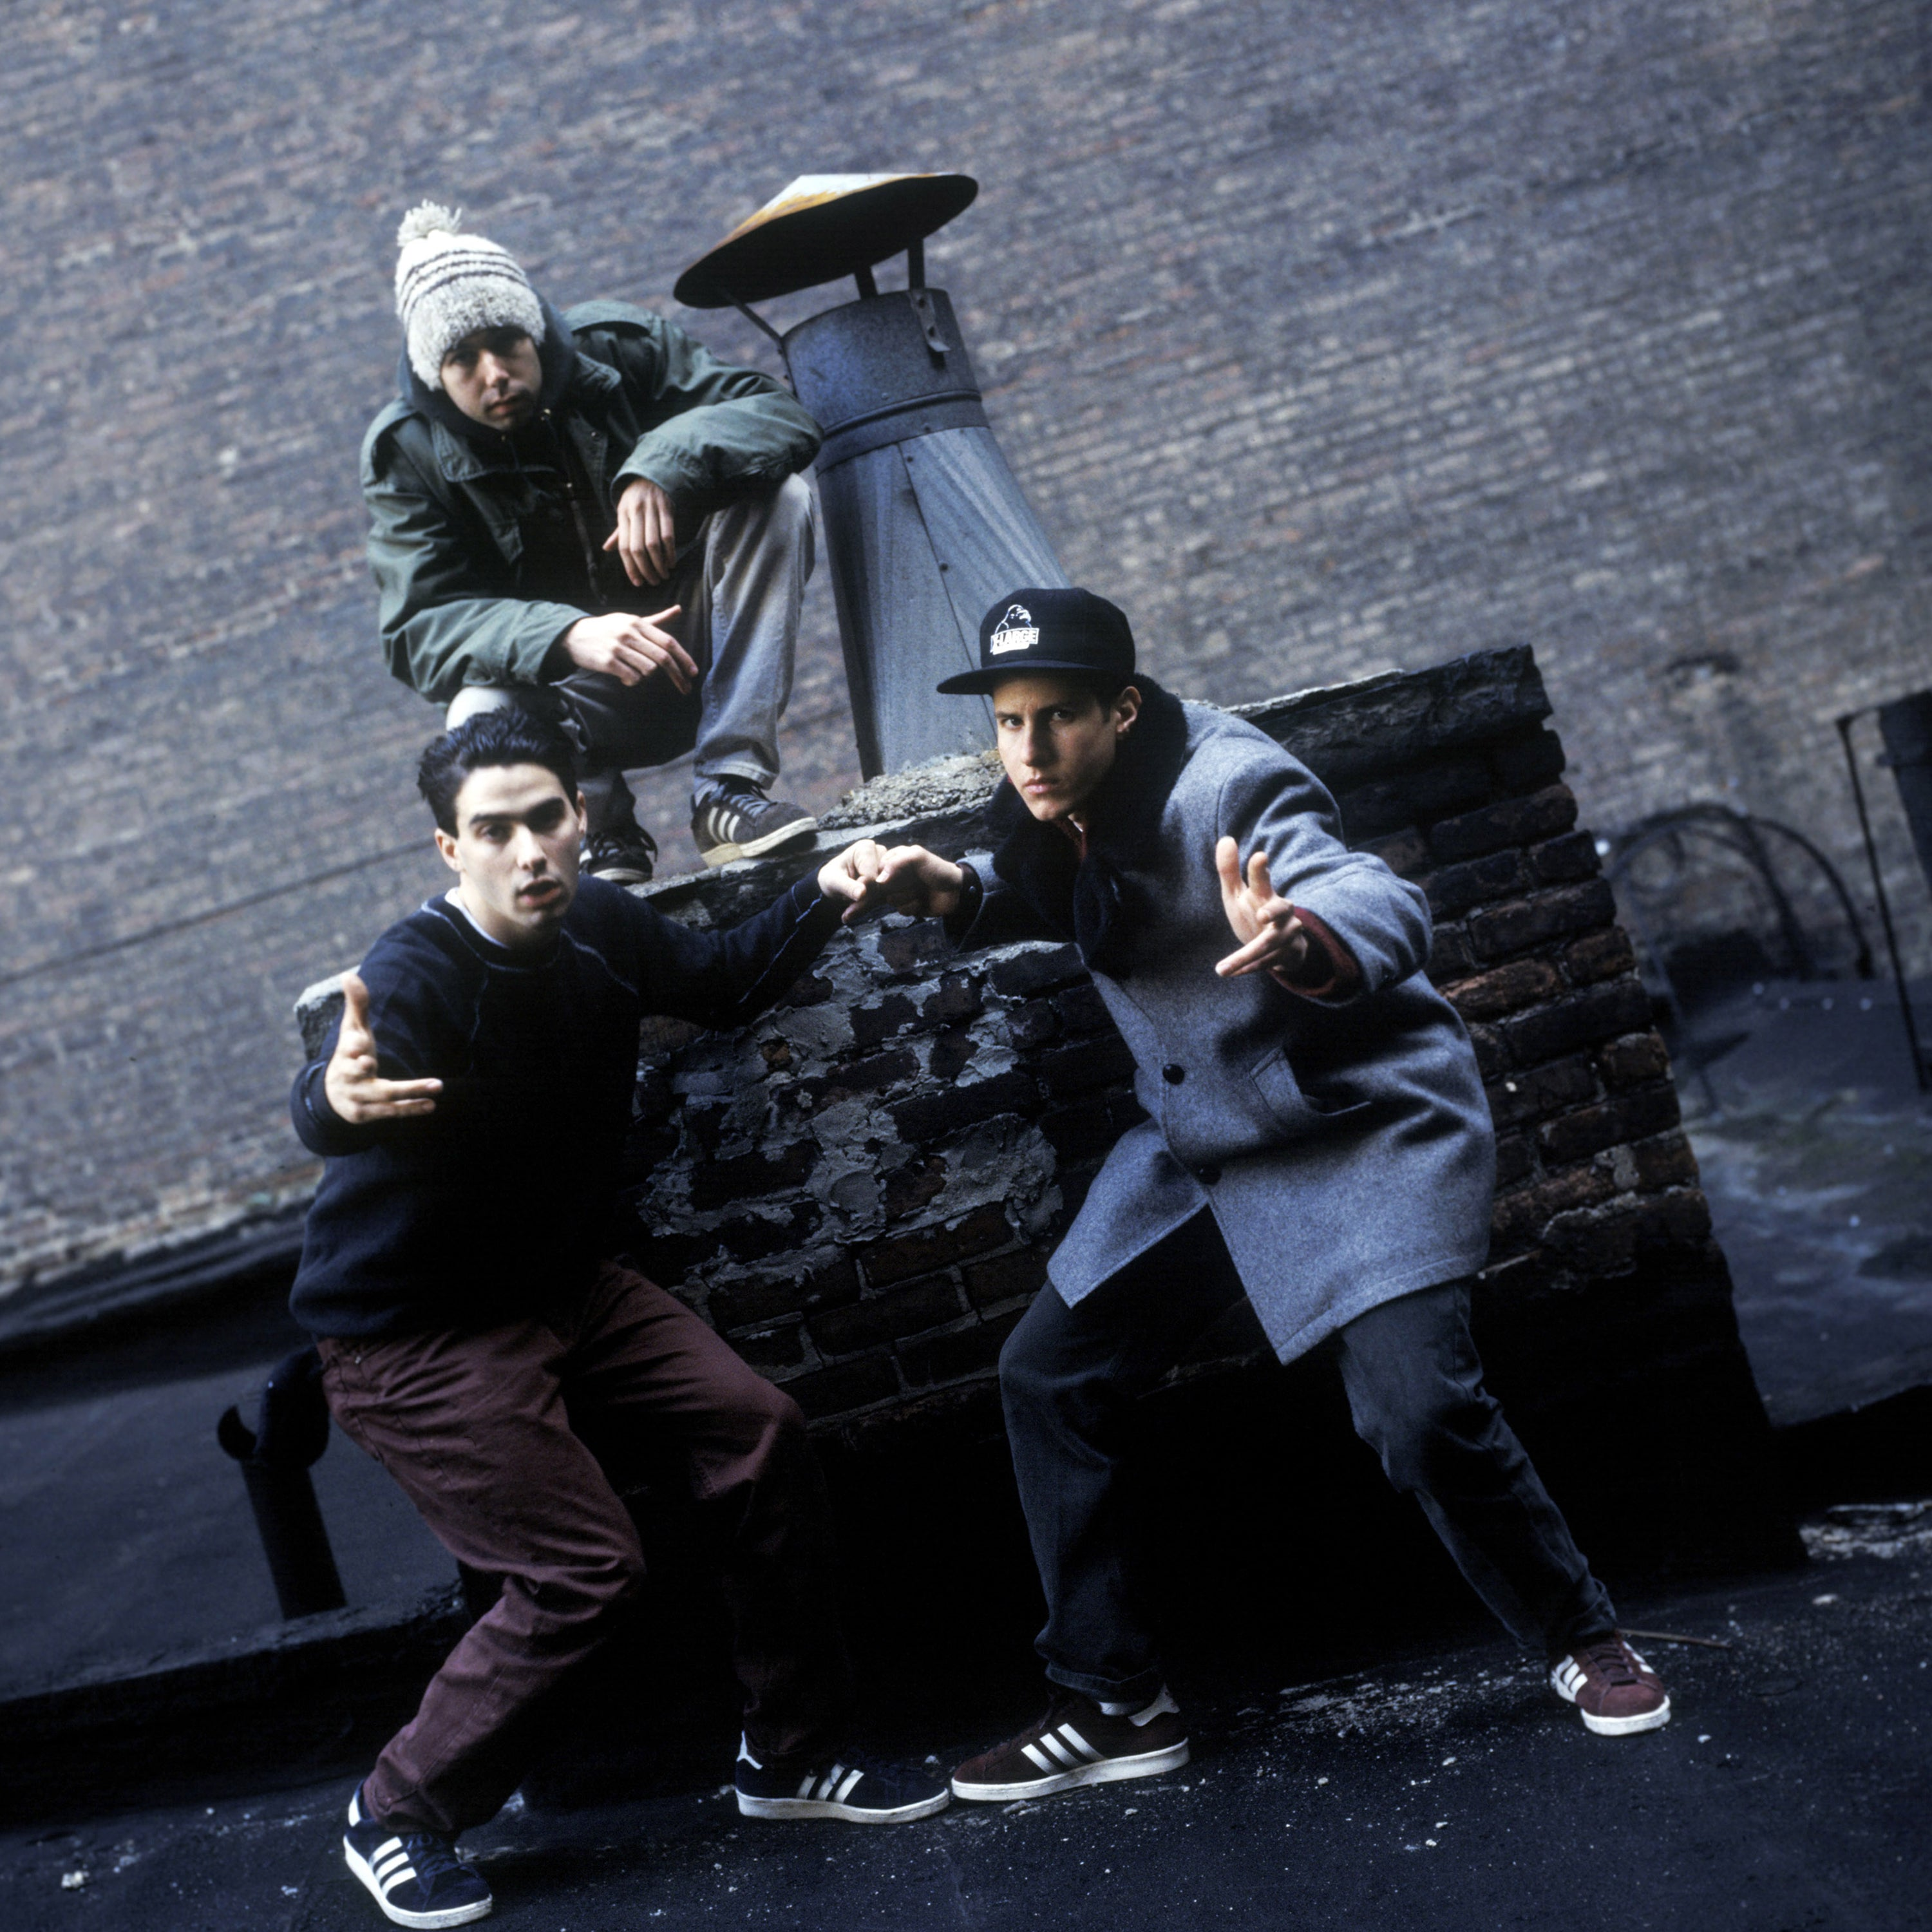 Ad-Rock, MCA and Mike D, of Beastie Boys New York, New York, 1994